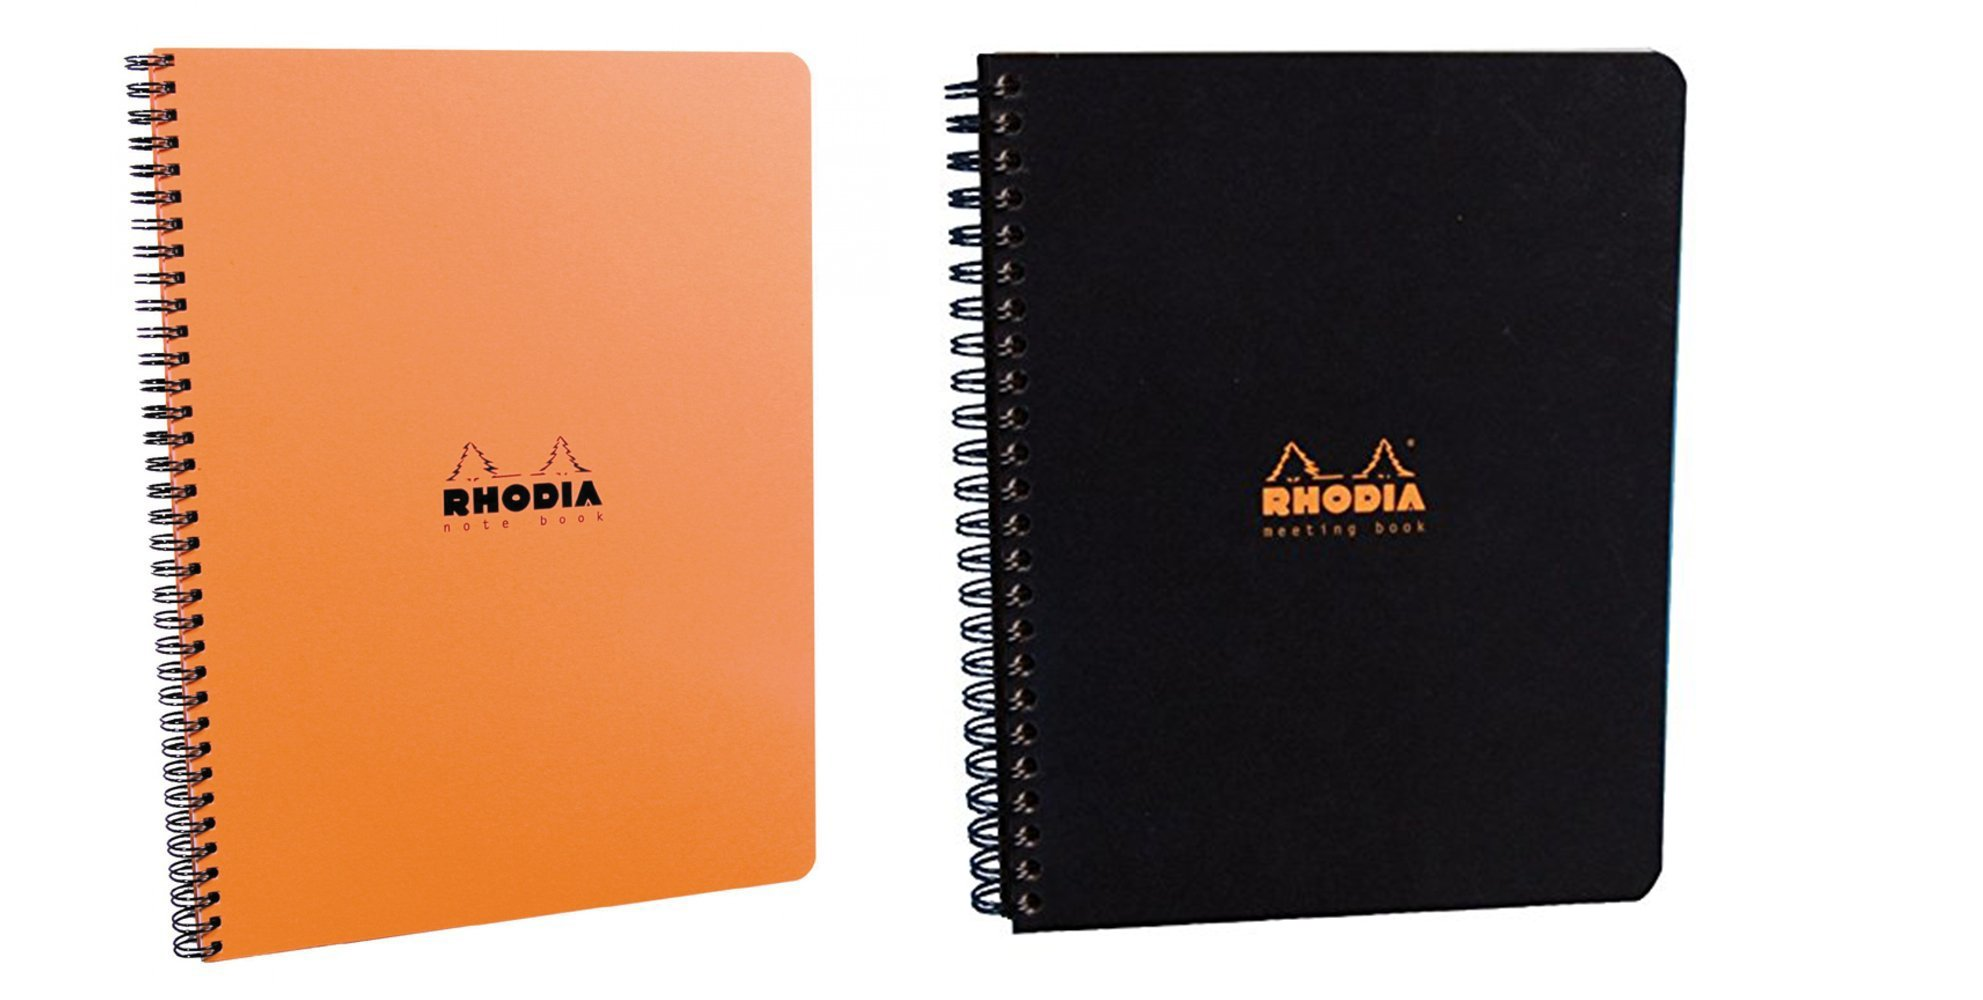 Rhodia Meeting Books 8.85 X 11.69 Inches, Pack of 2, Black and Orange